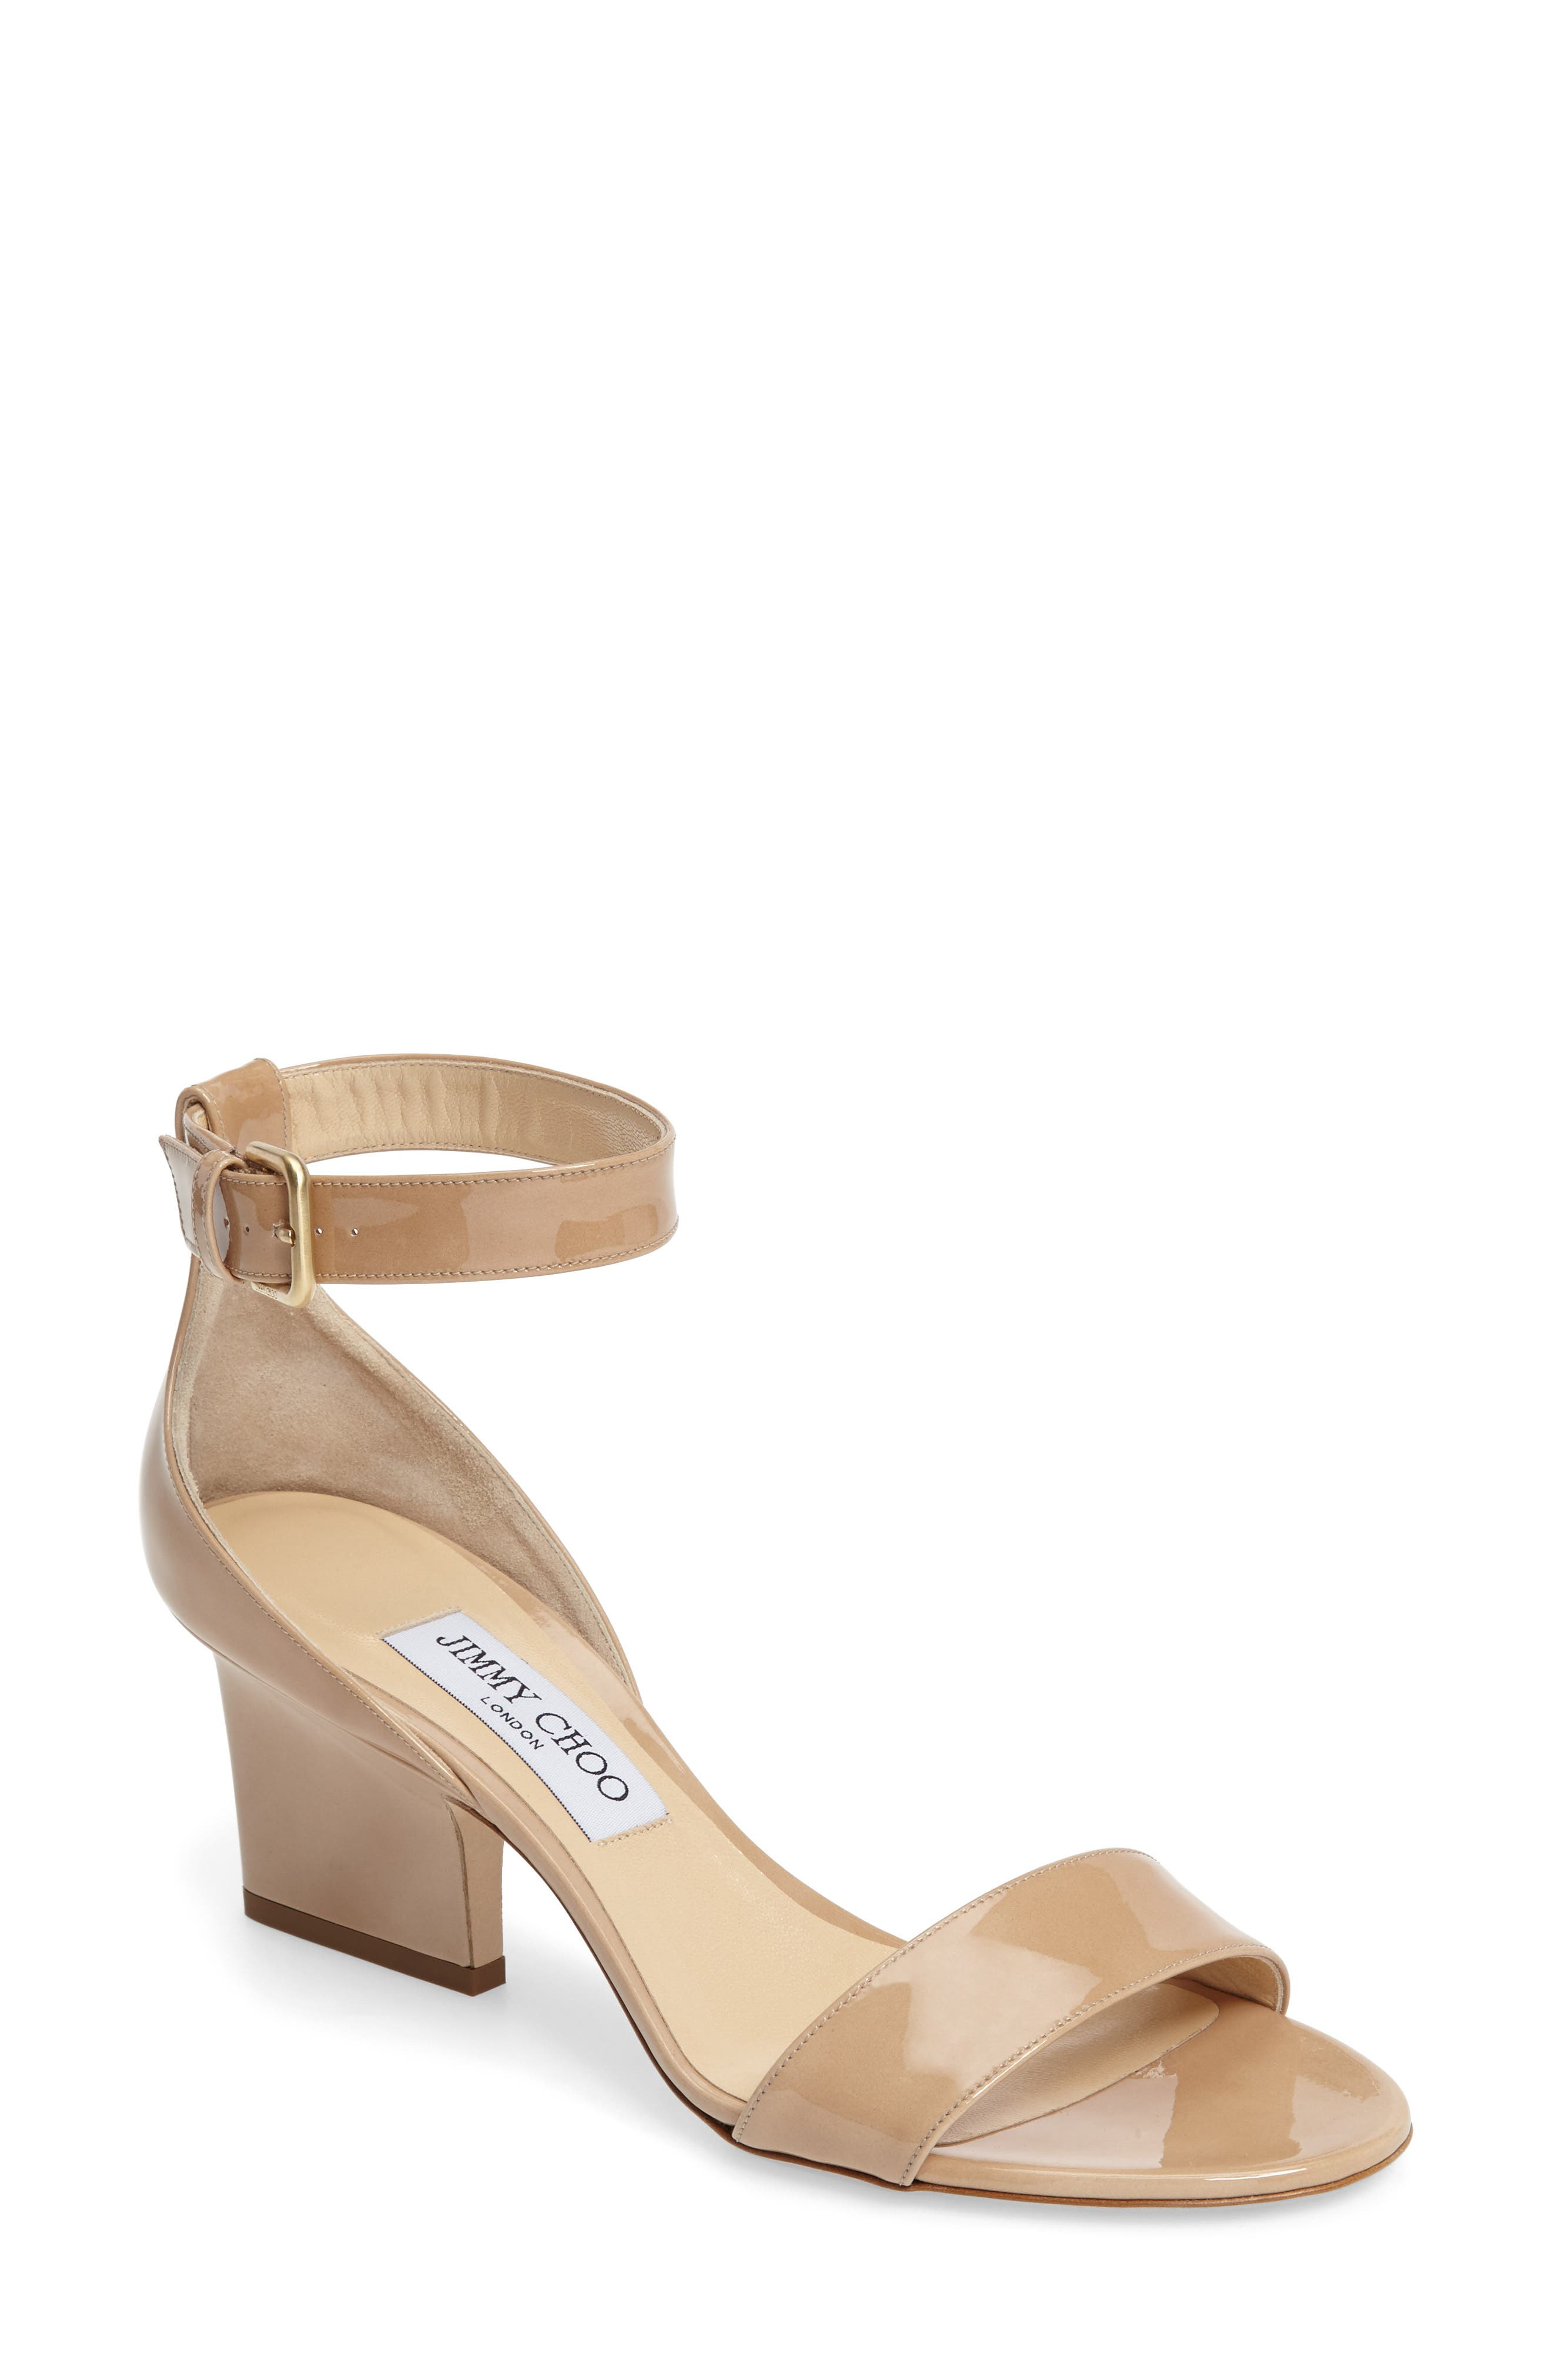 Edina Ankle Strap Sandal,                         Main,                         color, NUDE PATENT